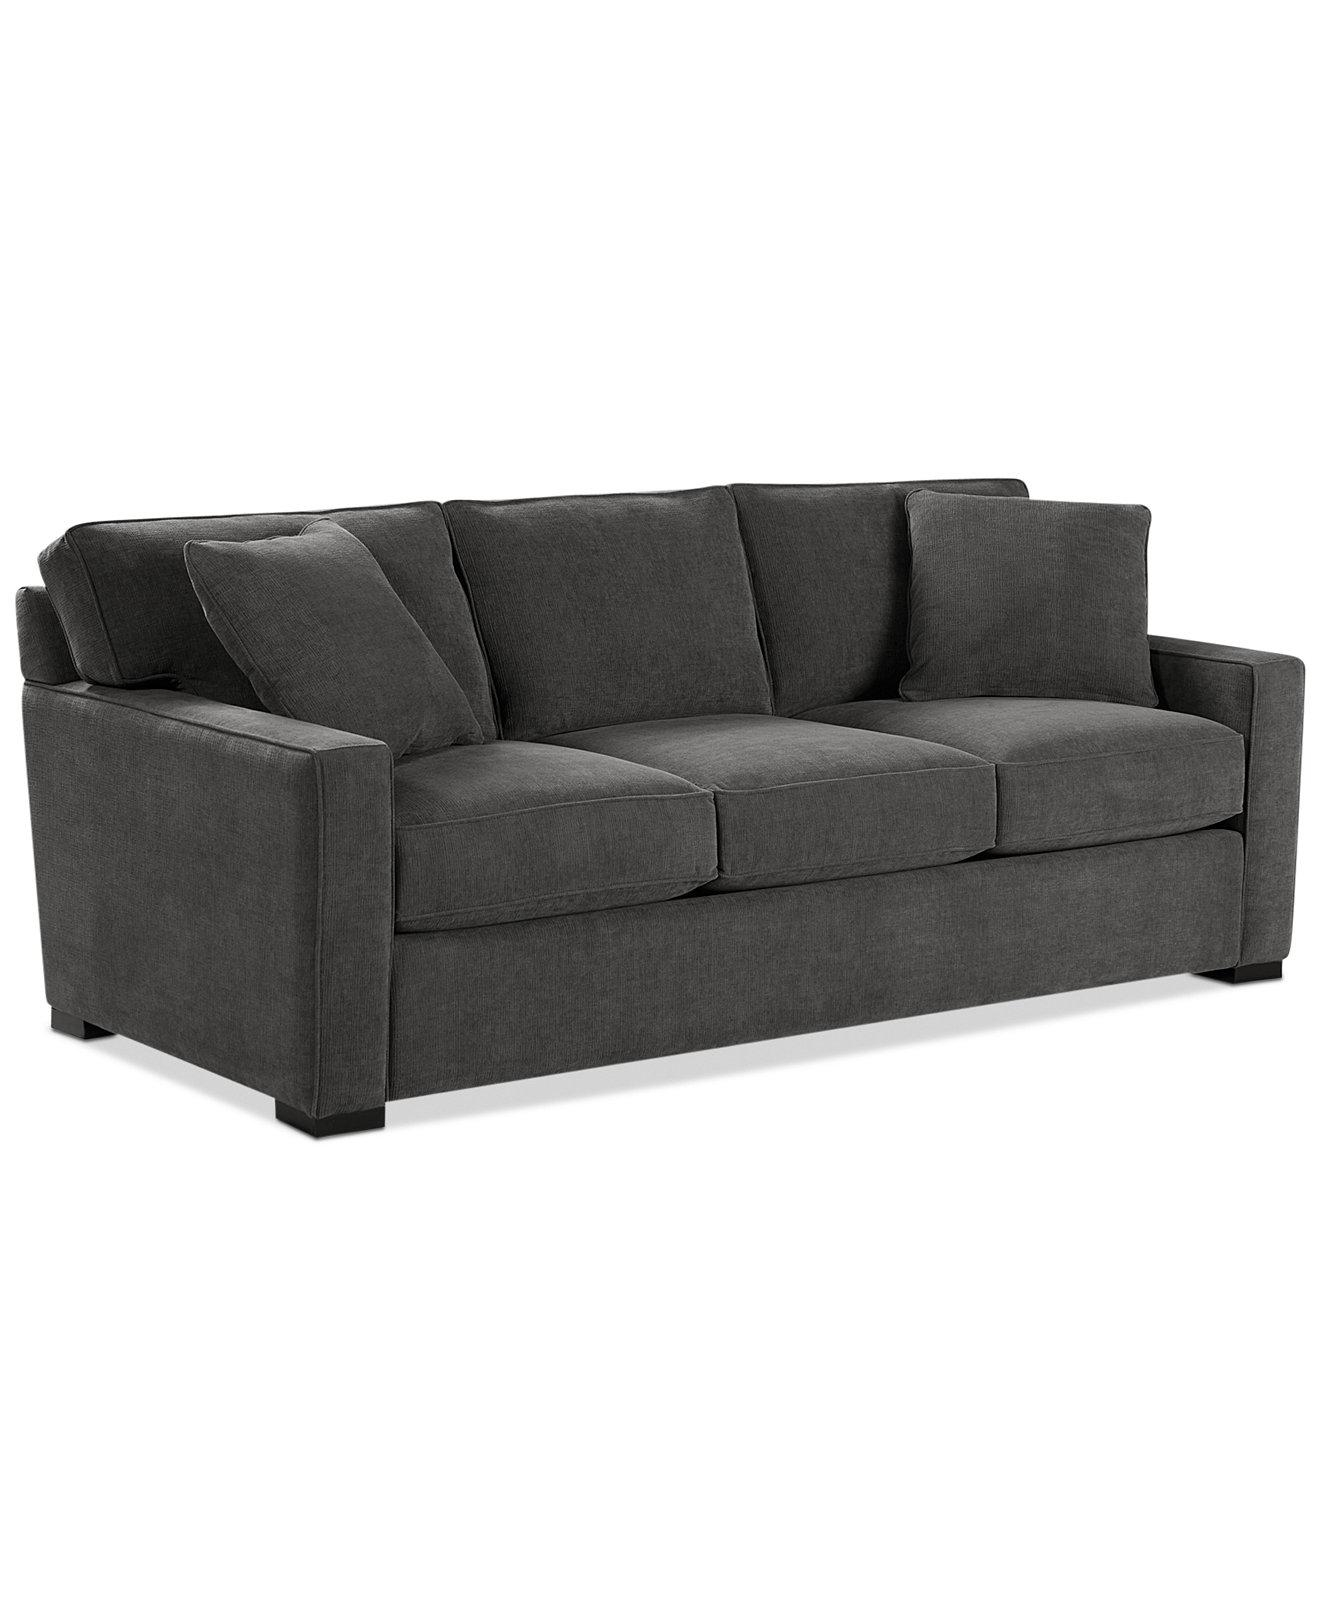 Sofas Center : Sectional Sofa Macys Archaicawful Pictures Ideas Regarding Bradley Sectional Sofas (Image 19 of 20)